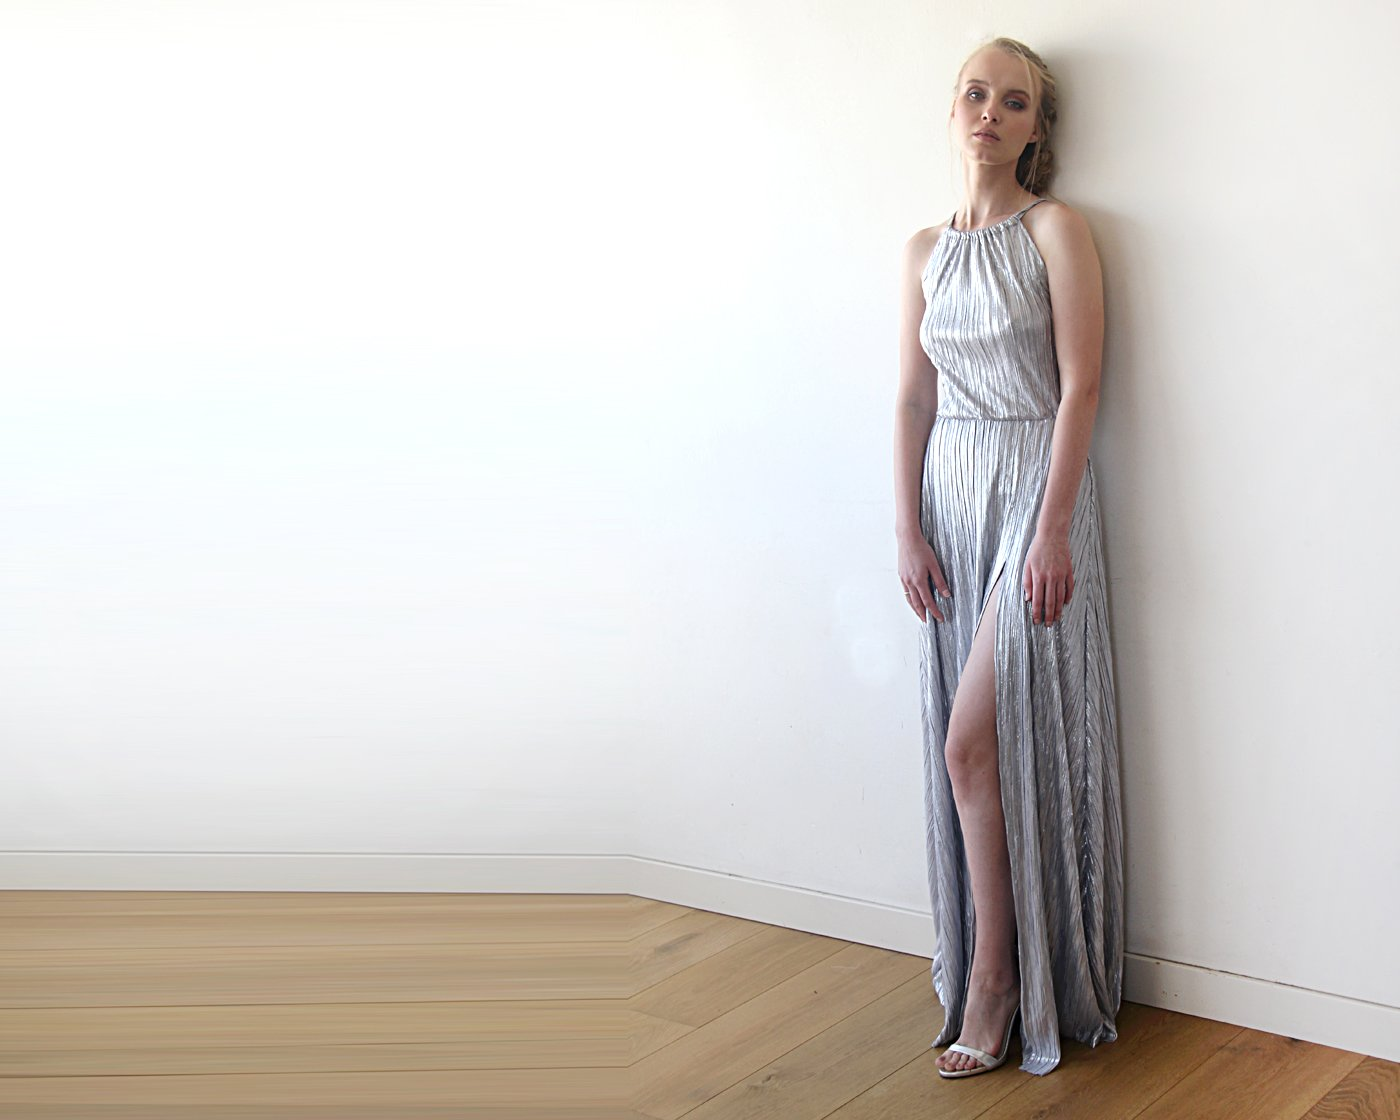 Pleated Halter Neck Sleeveless Maxi Dress, Metallic Silver Dress,Maxi Dress With A Slit 1200